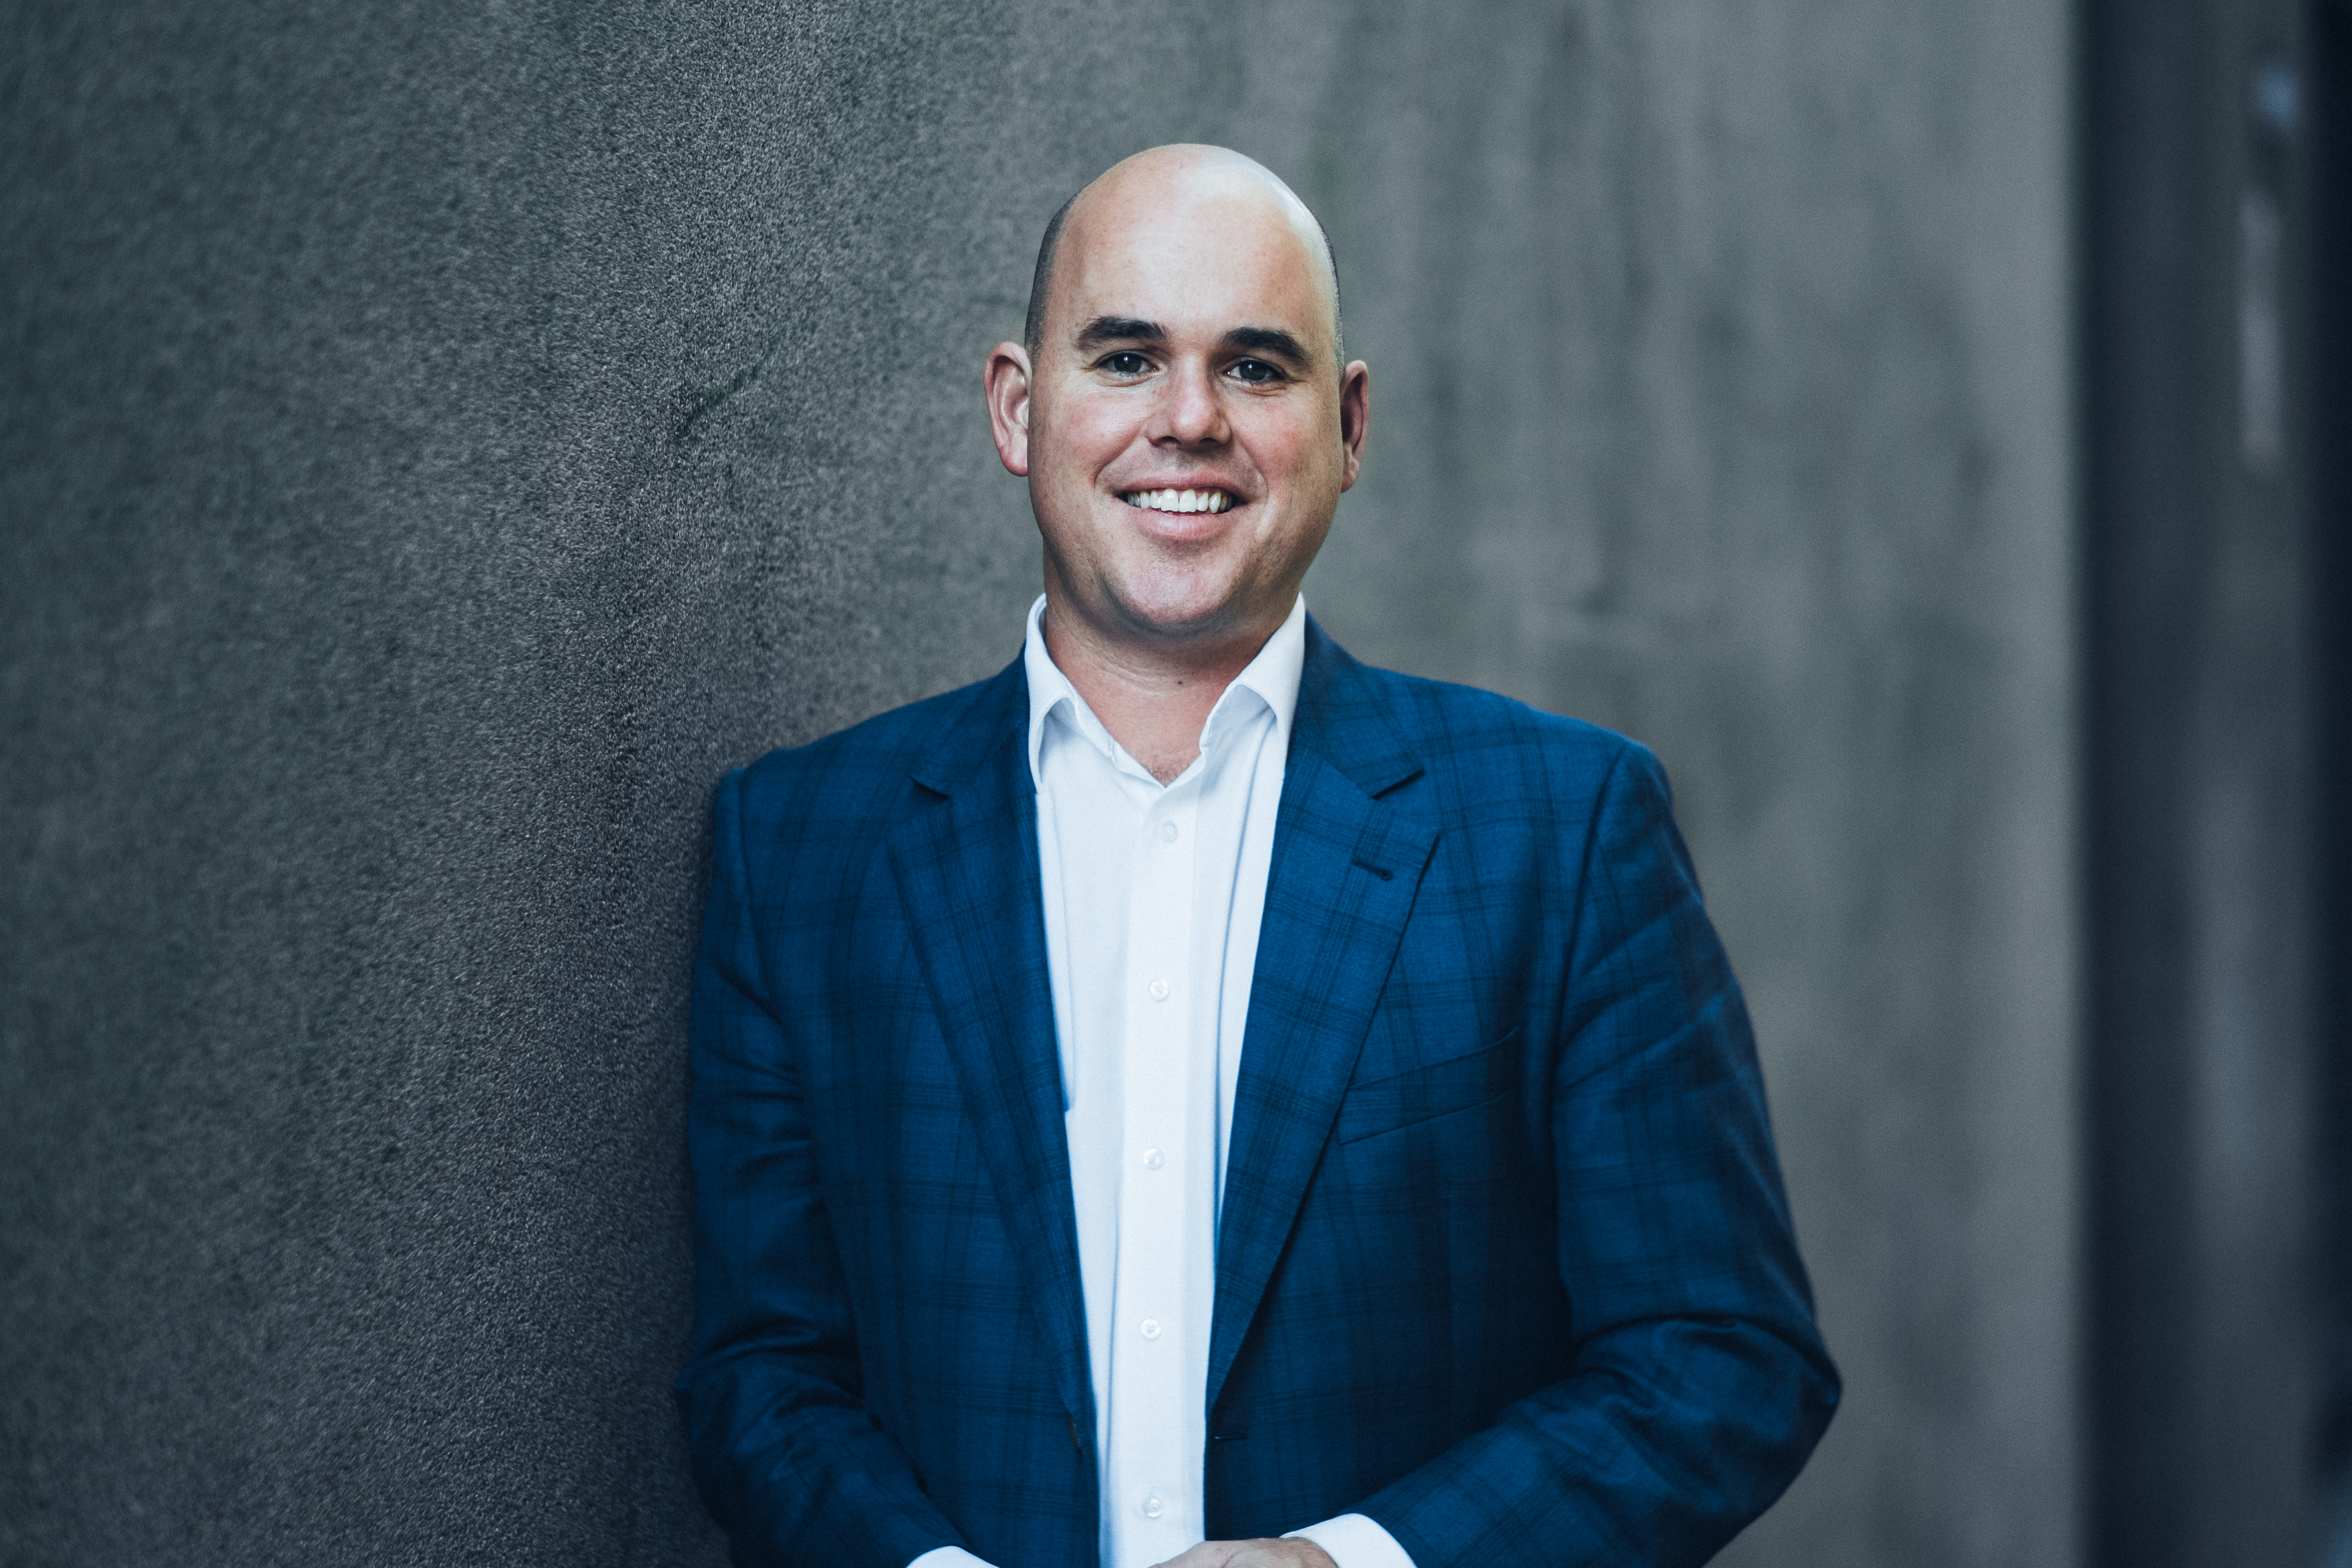 Jason Trethowan, Chief Executive Officer